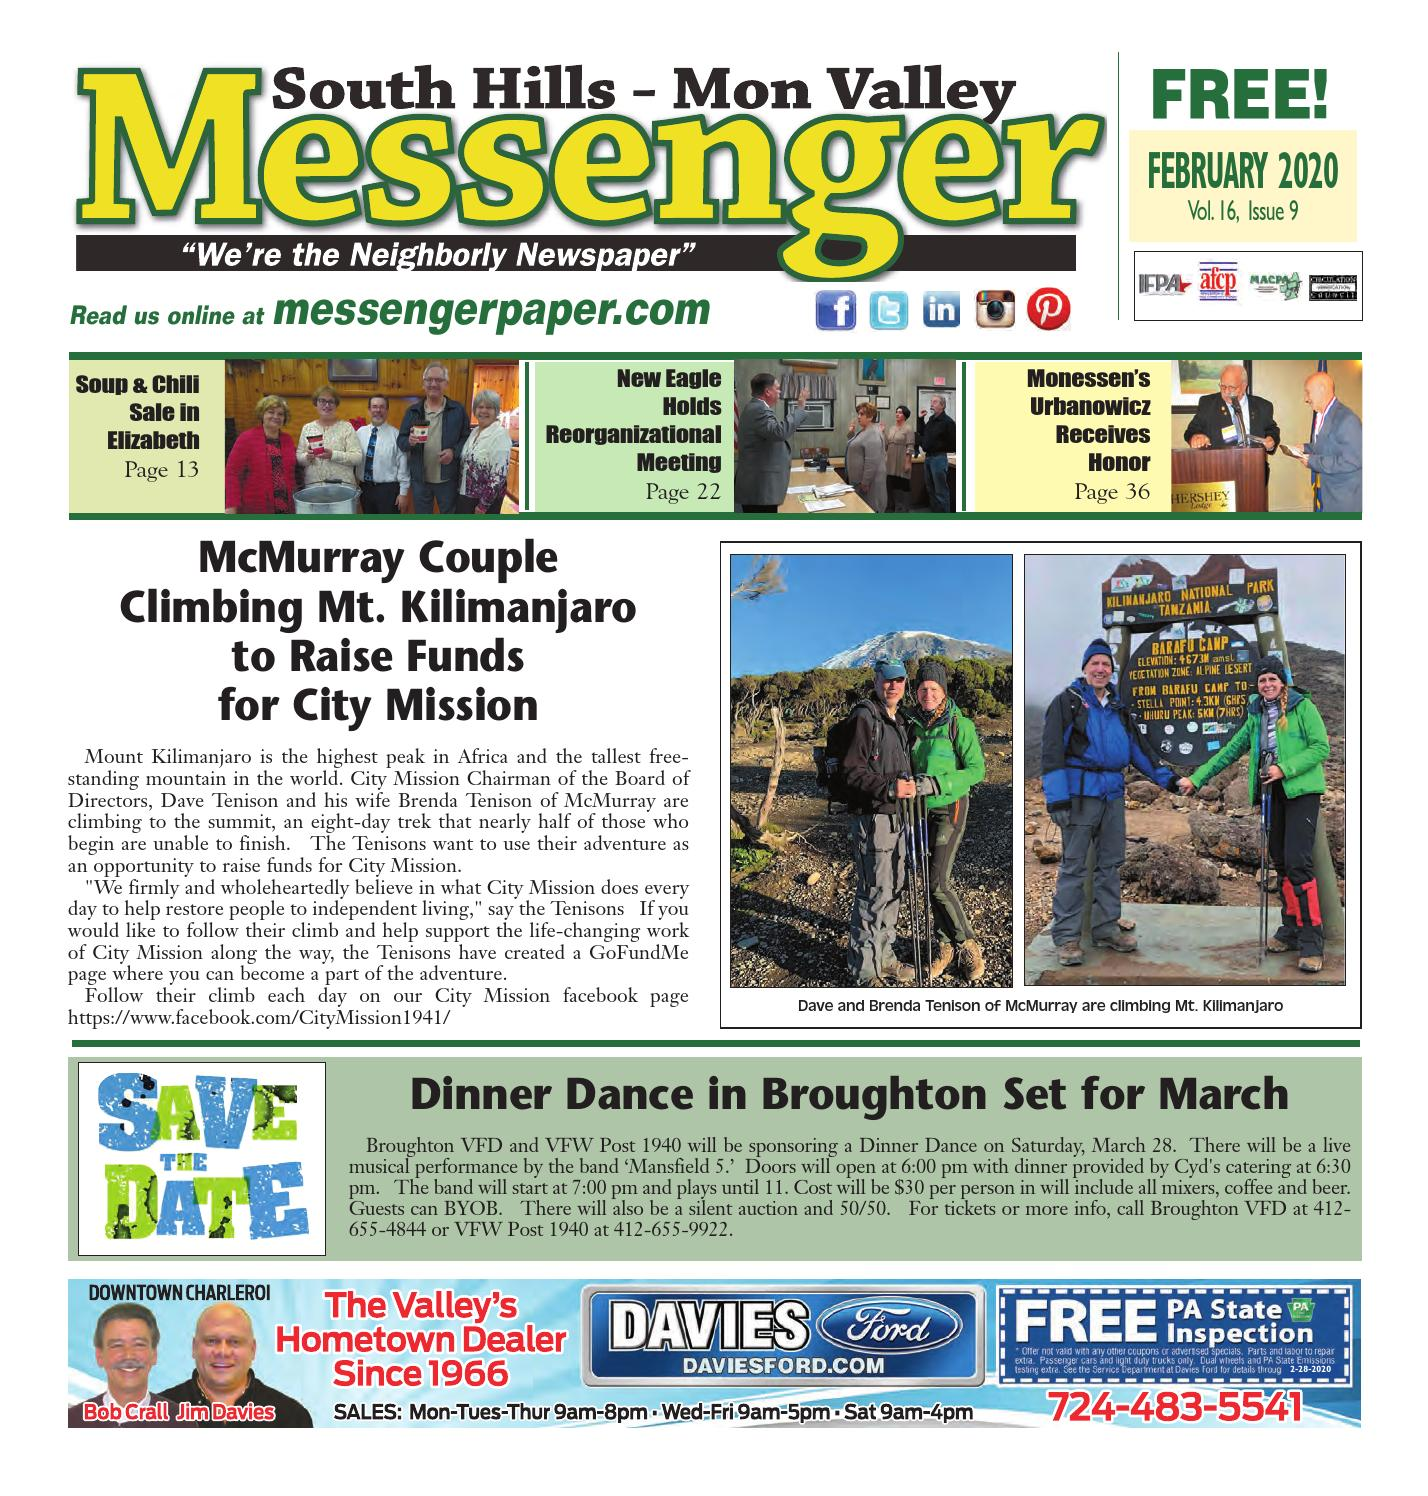 small trinket bowl hand woven basket with decorative cross.htm south hills mon valley messenger february 2020 by south hills mon  valley messenger february 2020